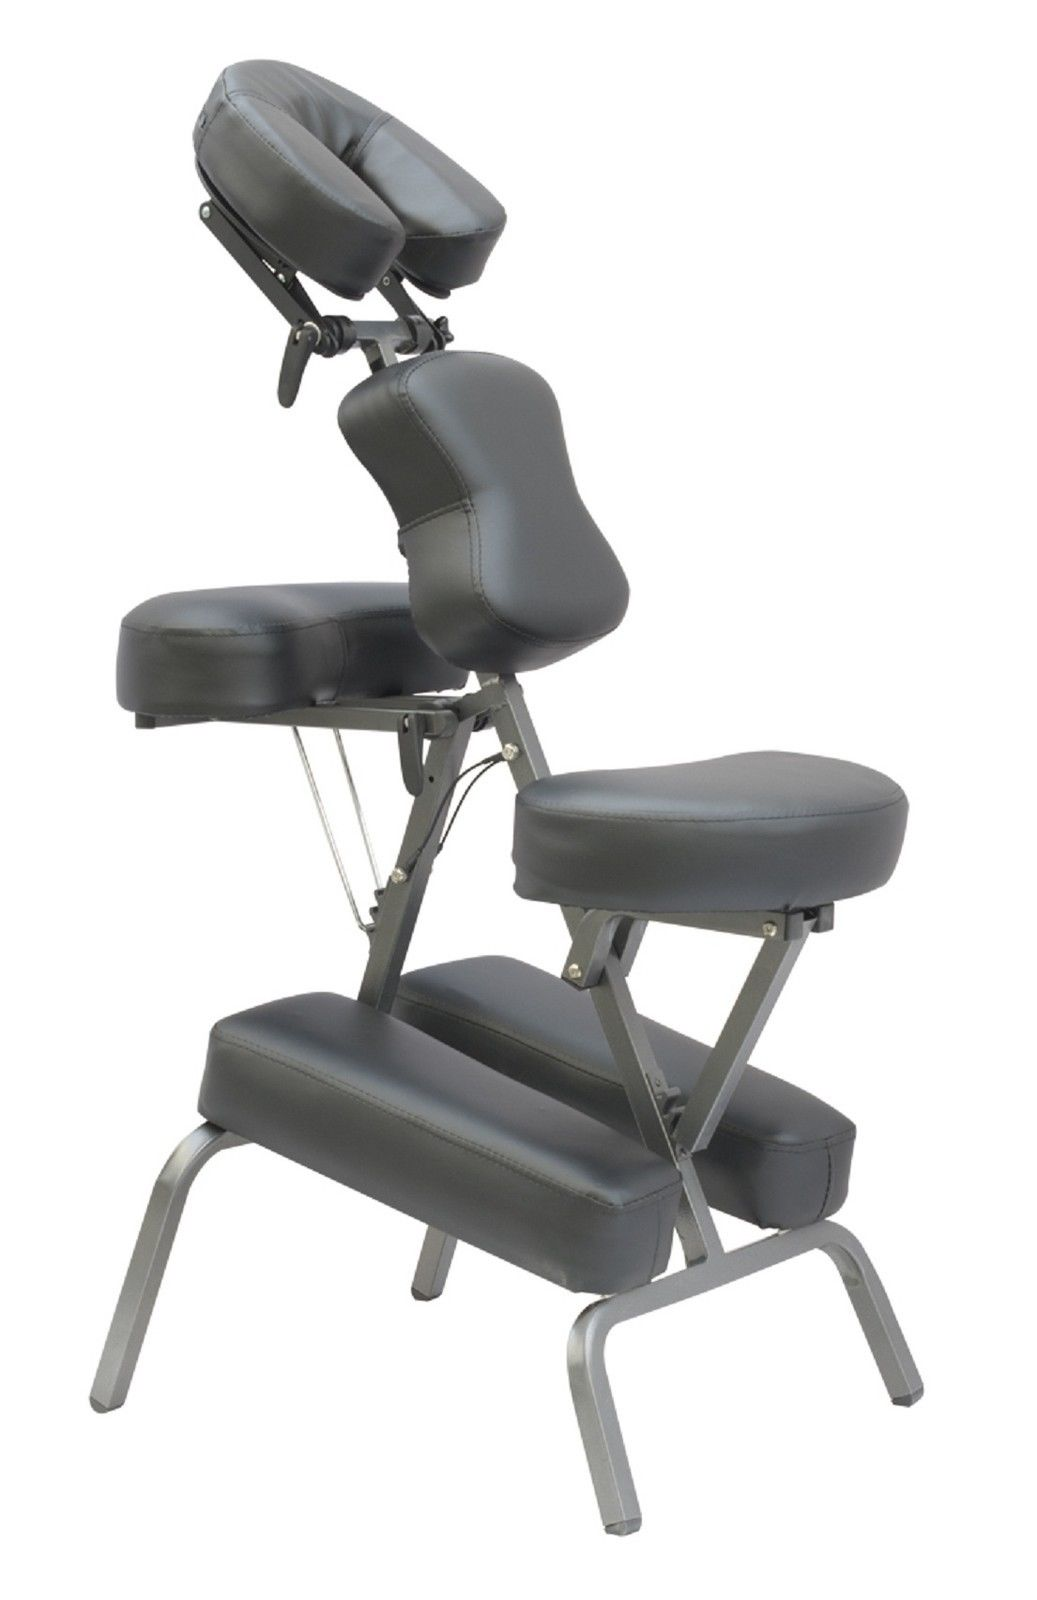 Portable massage chair brody massage - Portable reflexology chair ...